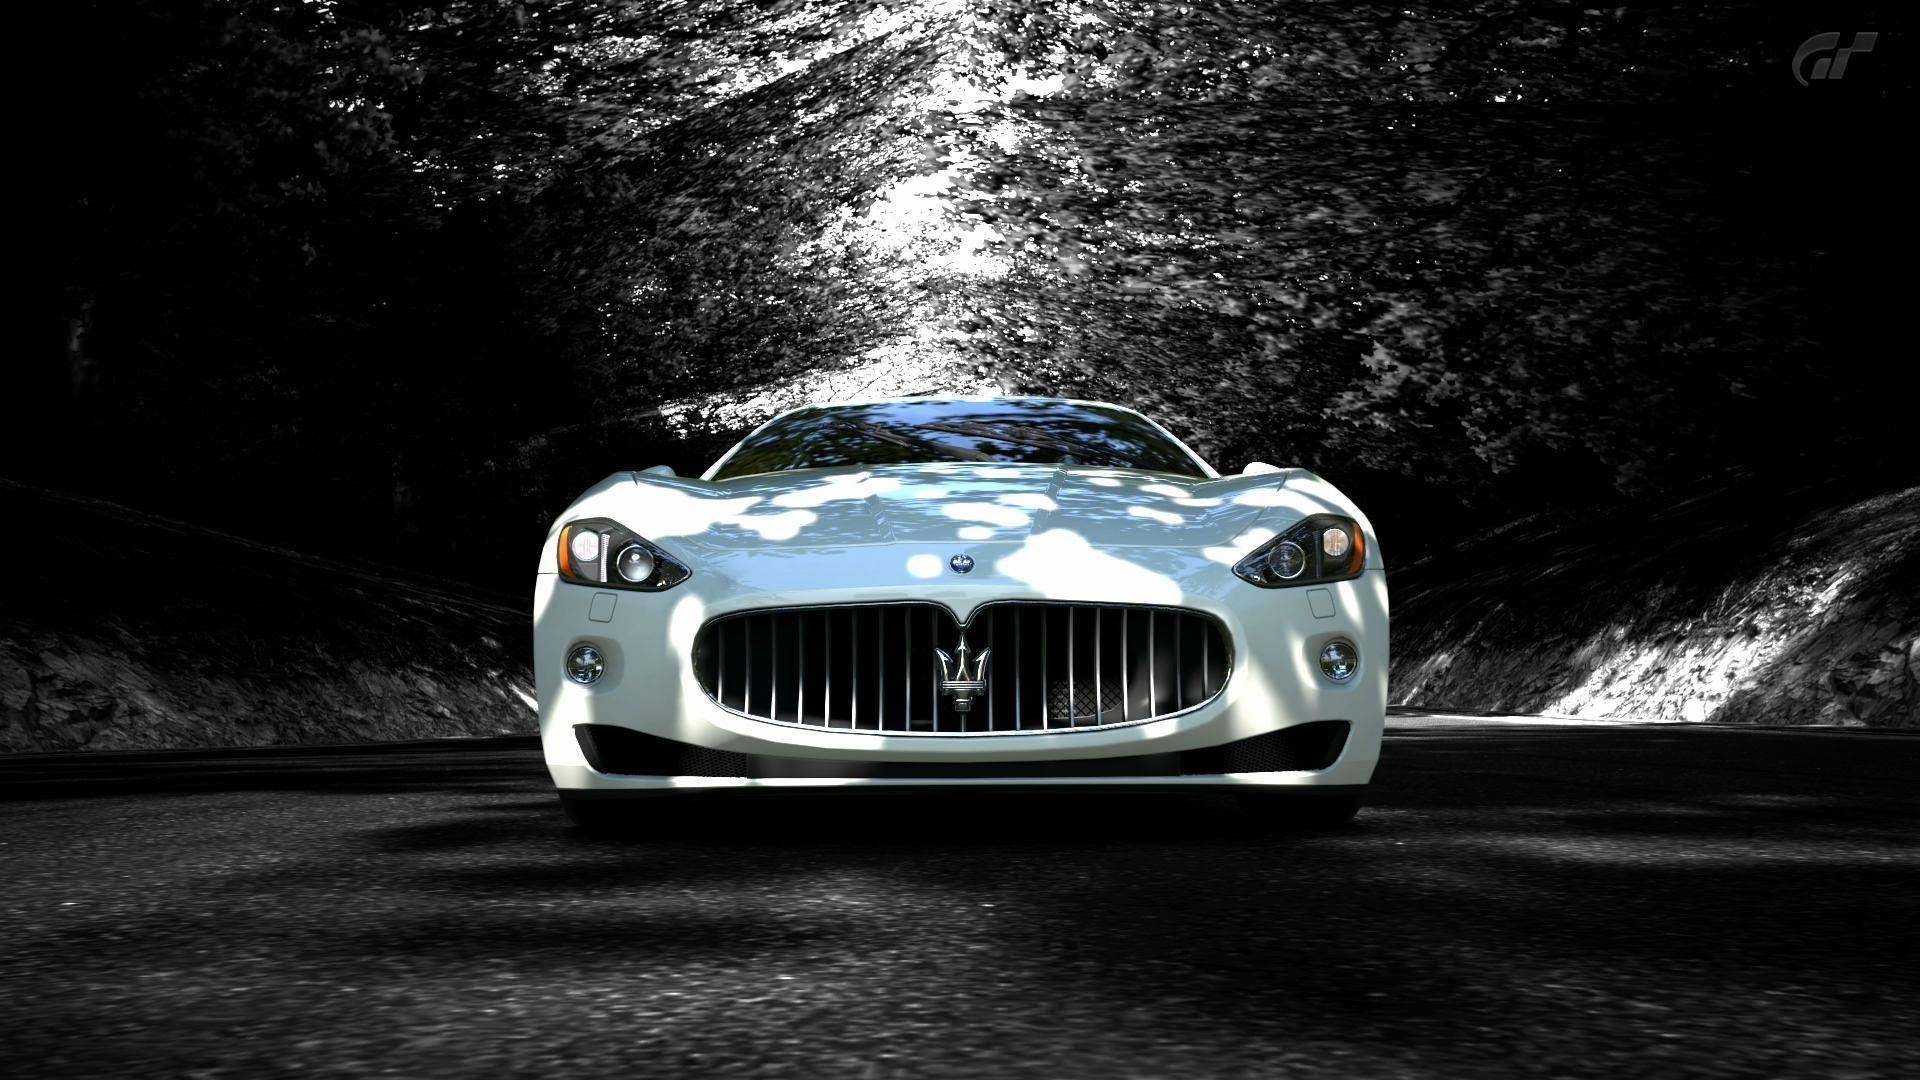 maserati quattroporte hd widescreen - photo #42